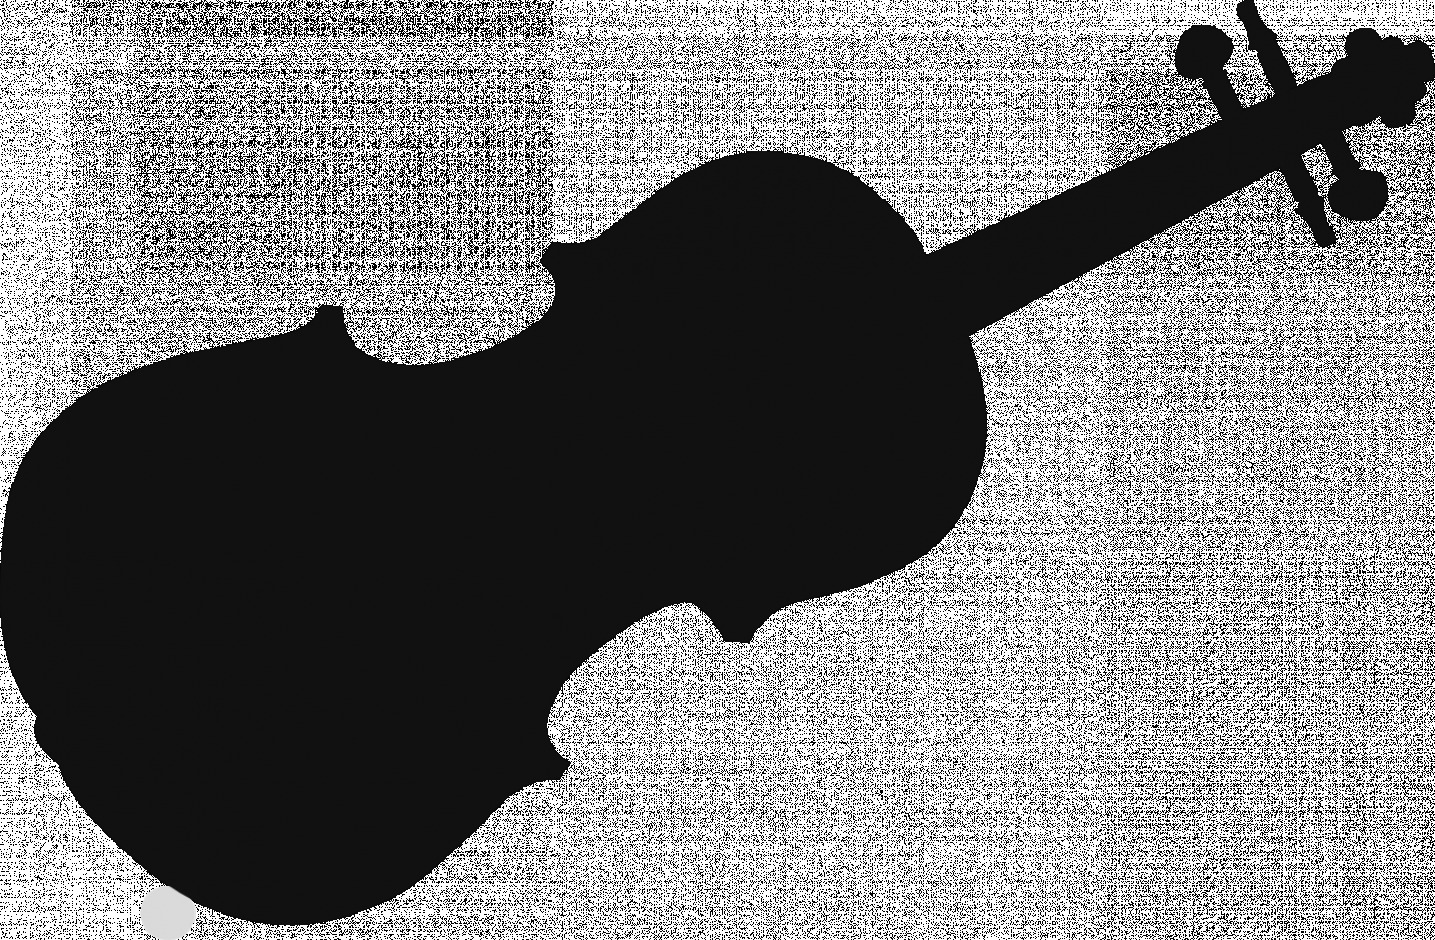 Inspirational clip art elegant. Cello clipart black and white